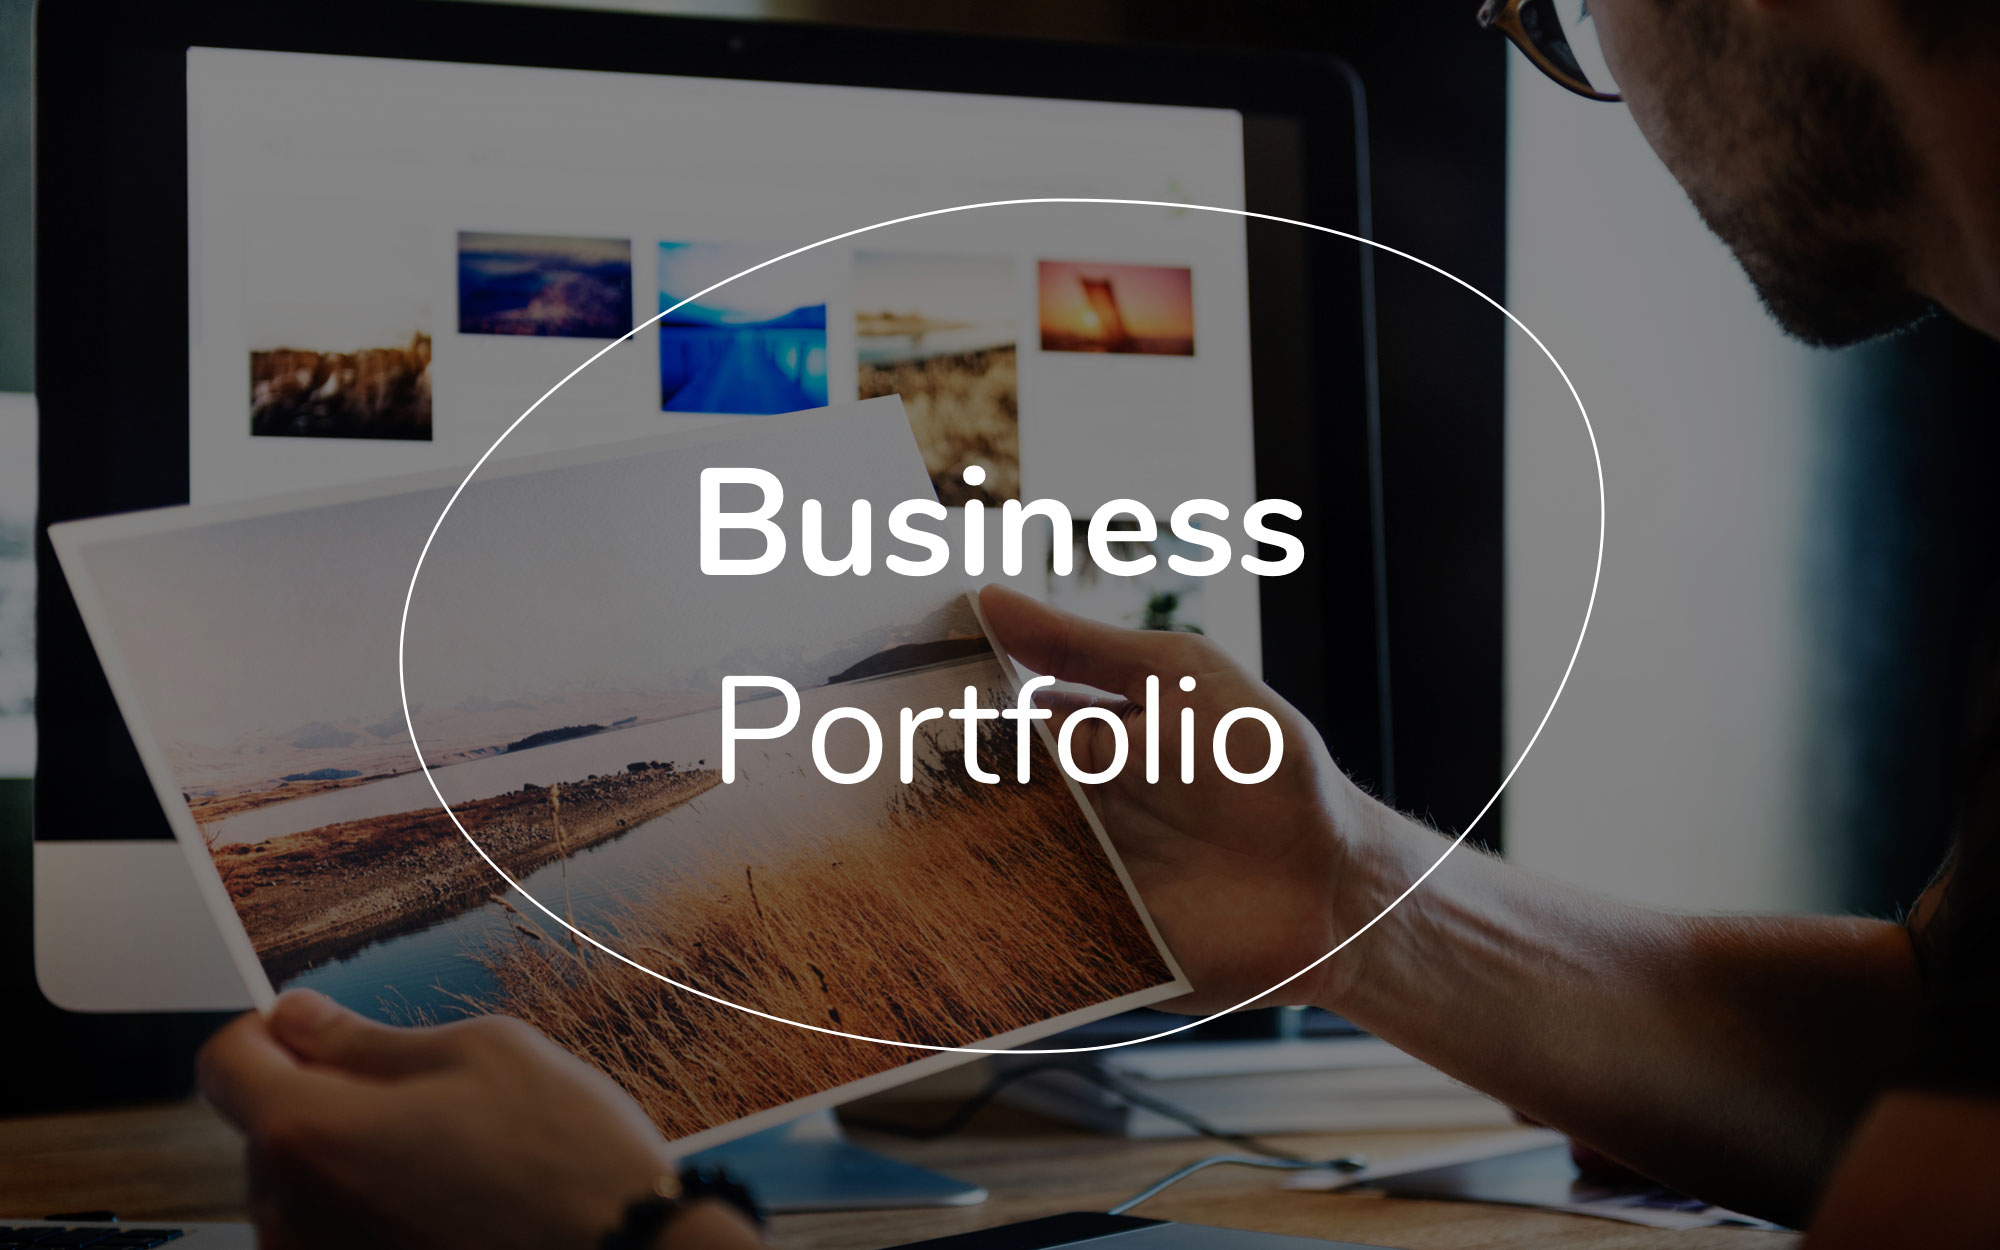 Business portfolio template free pdf ppt download slidebean business portfolio template free pdf ppt download flashek Image collections